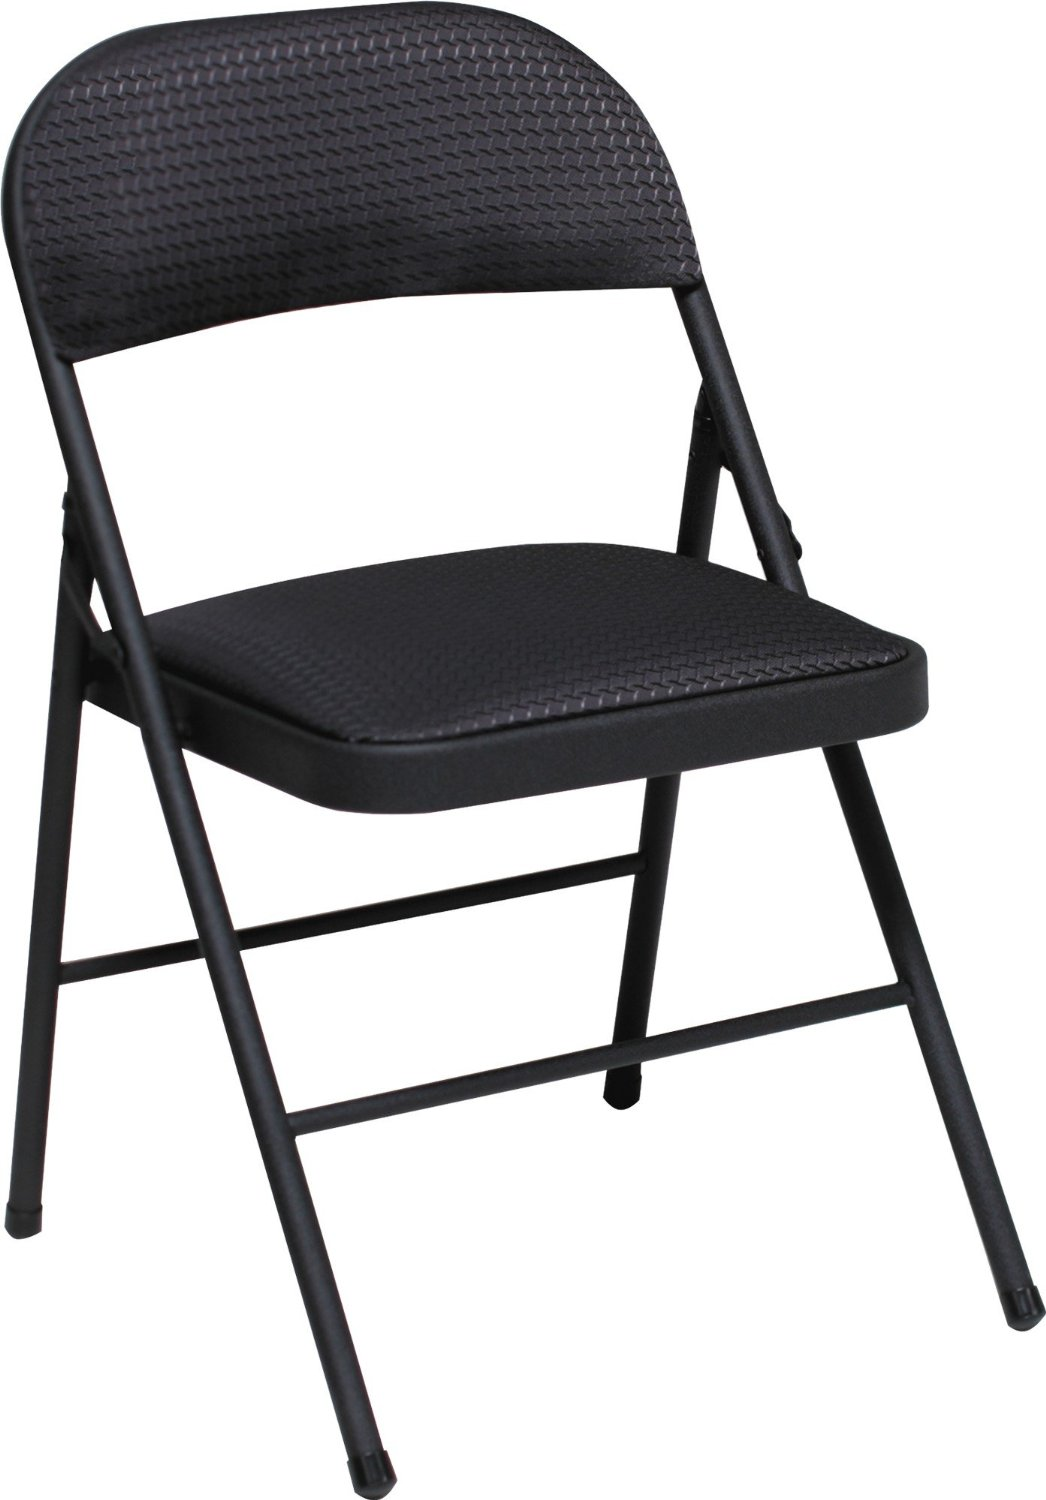 Cosco Commercial Fabric Indoor Outdoor Folding Chair With Fabric Cushion,  Black